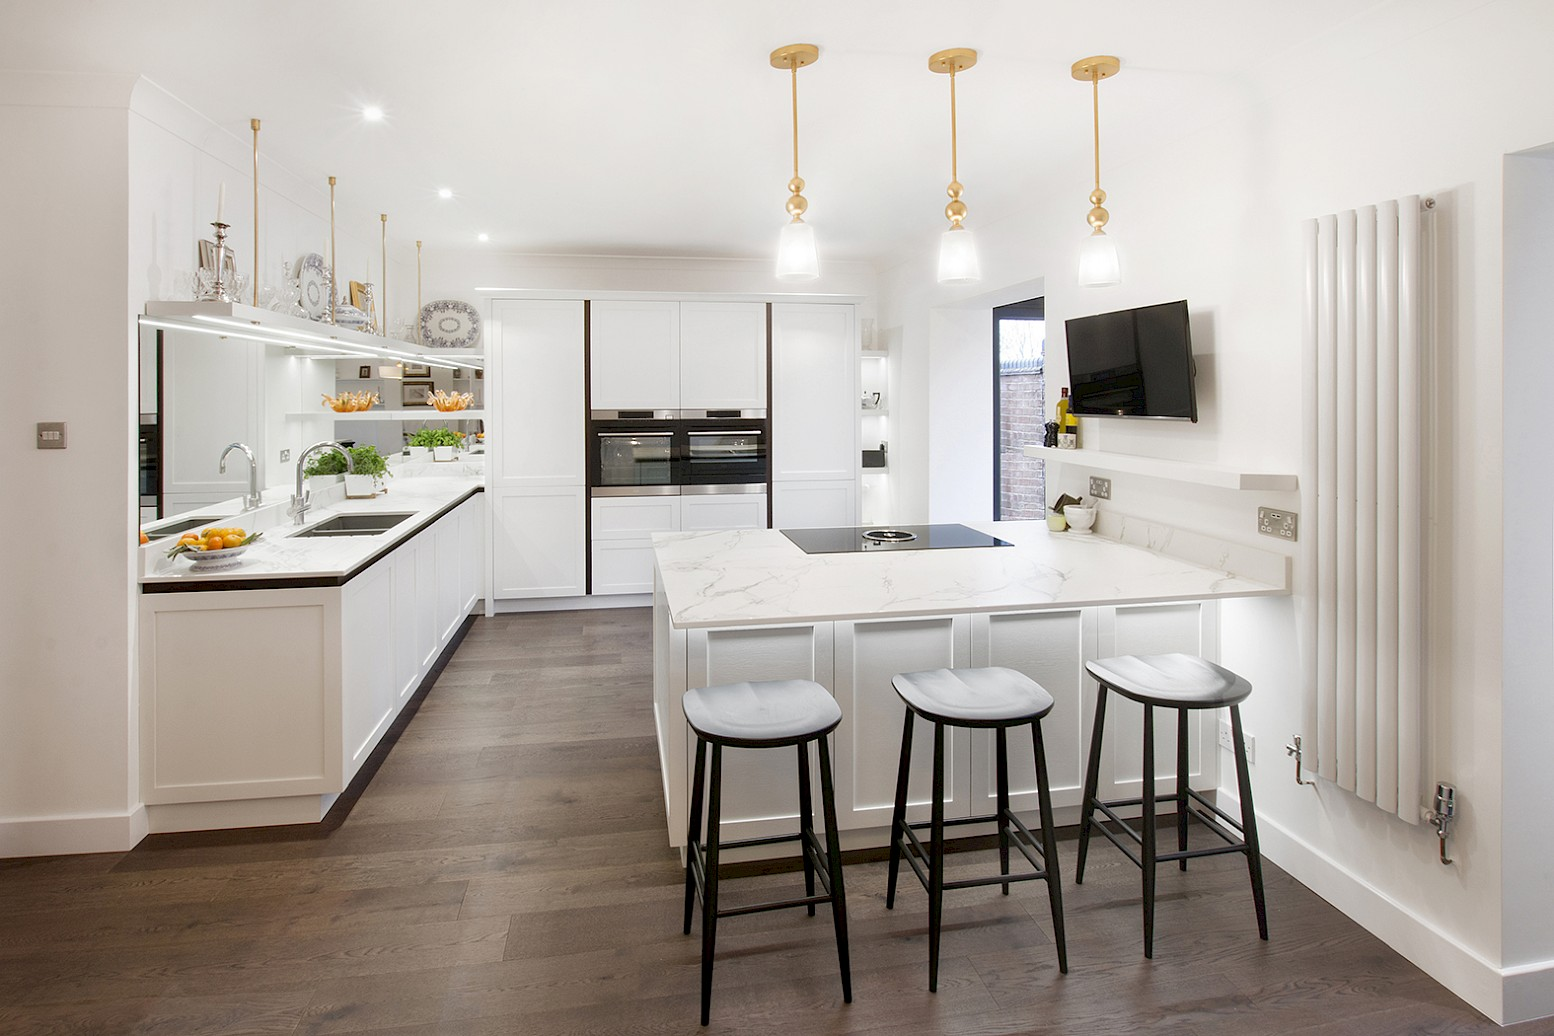 Open plan kitchen - extend and revise layout in Handleless ...